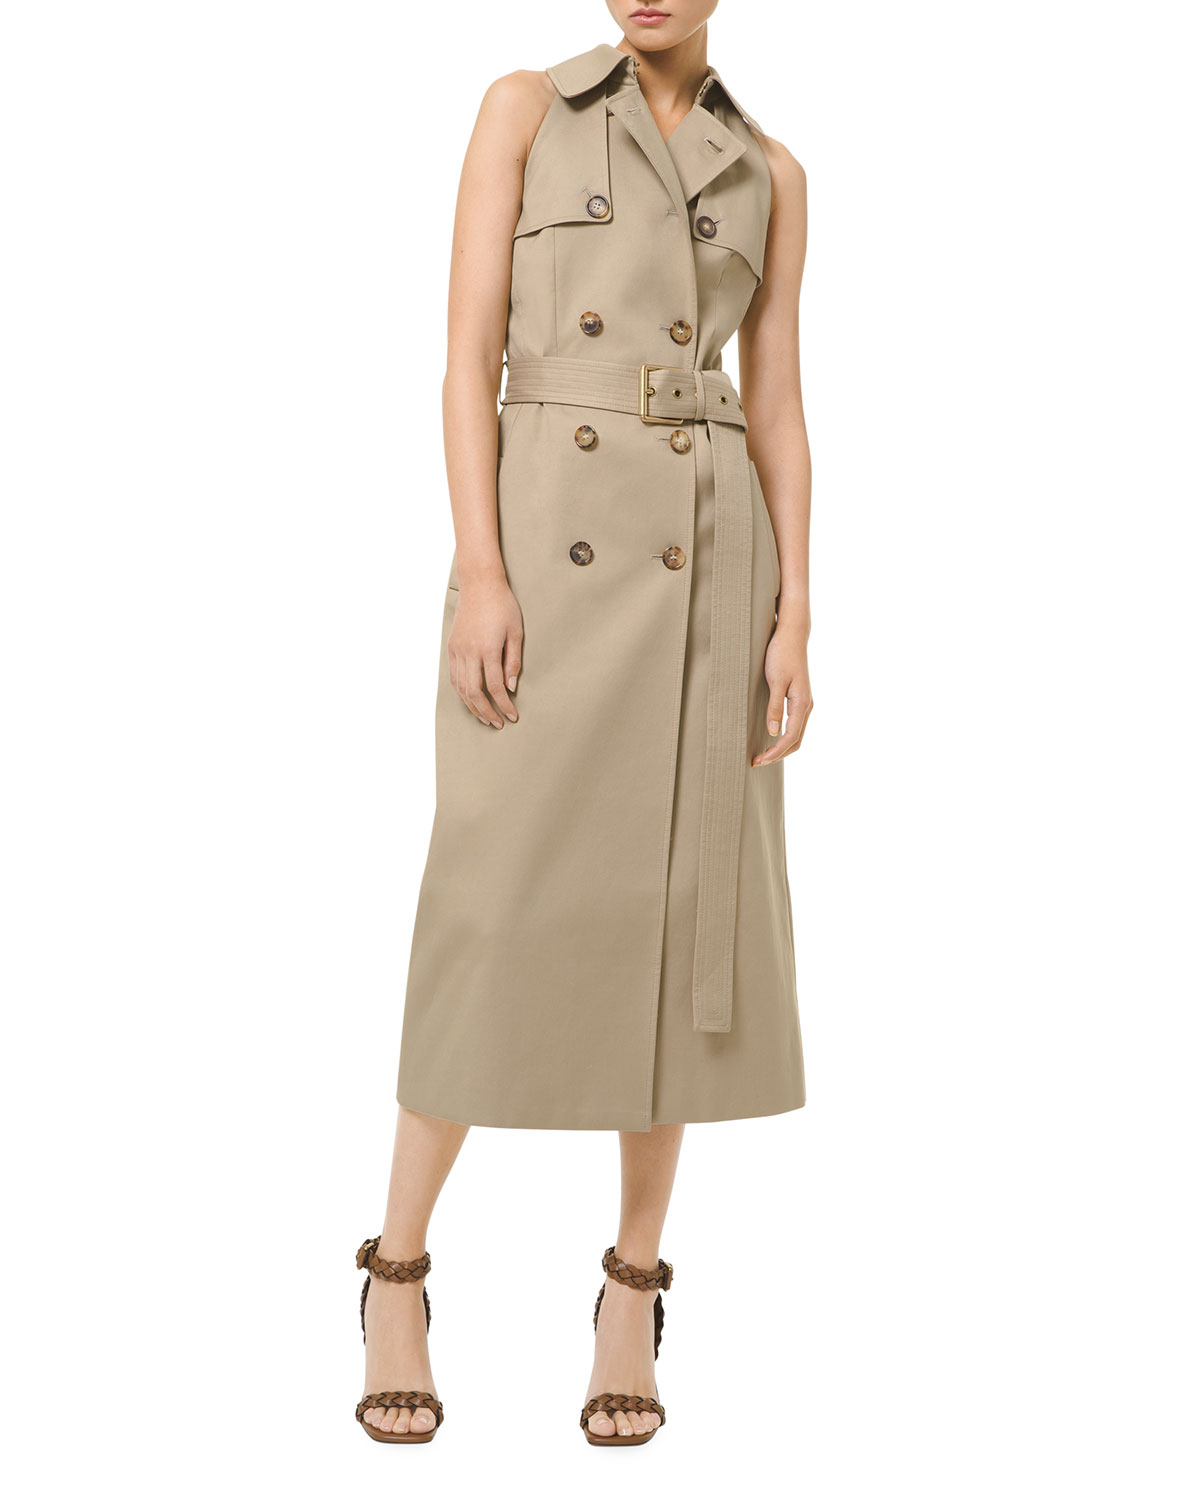 Michael Kors SLEEVELESS TRENCH SHEATH DRESS